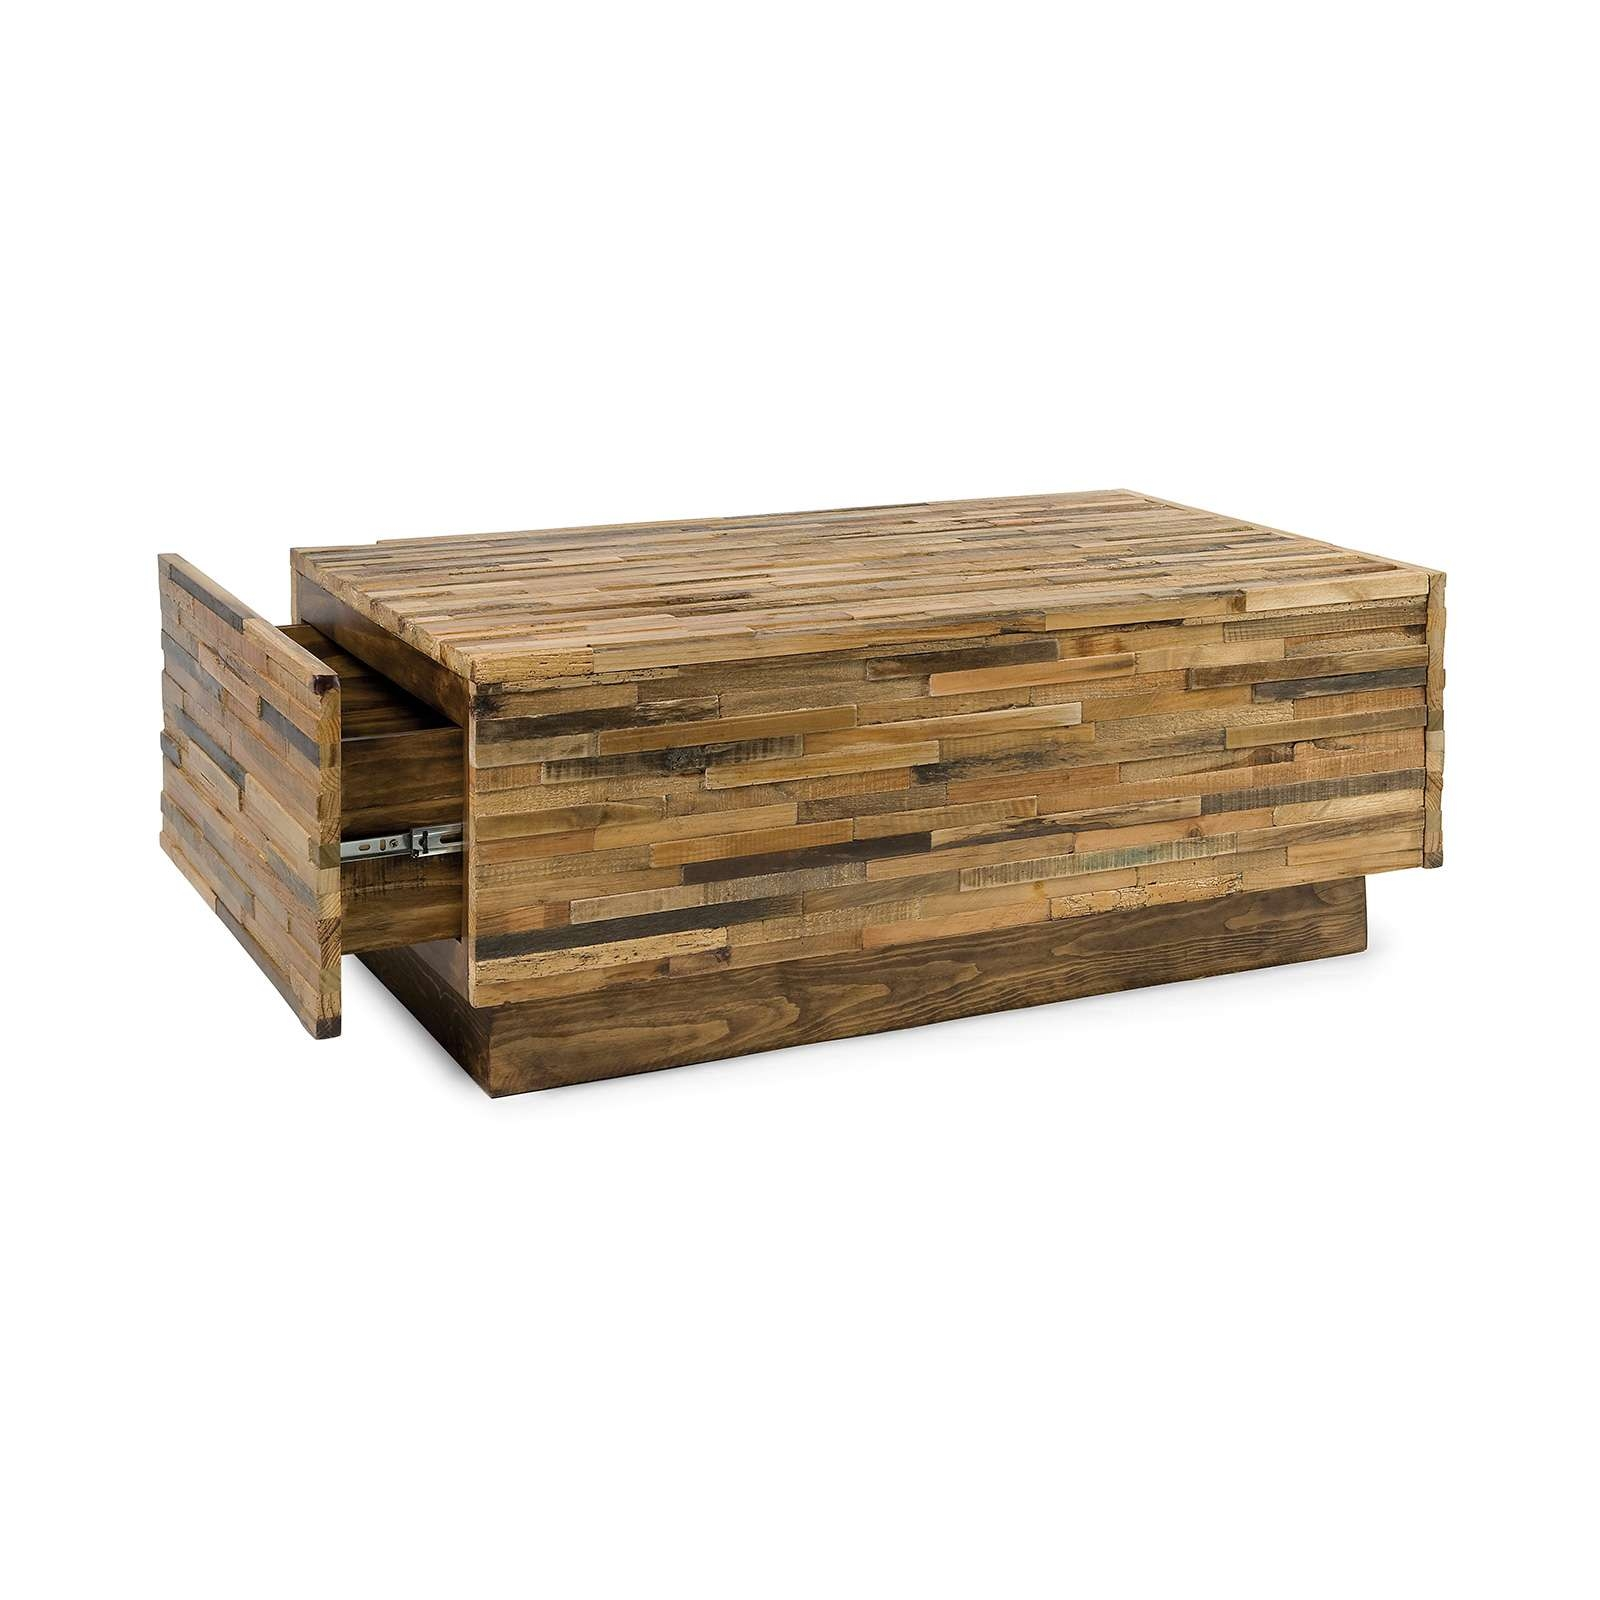 Most Current Rustic Coffee Table Drawers Regarding Coffee Table : Amazing Farm Style Coffee Table Reclaimed Wood (View 11 of 20)